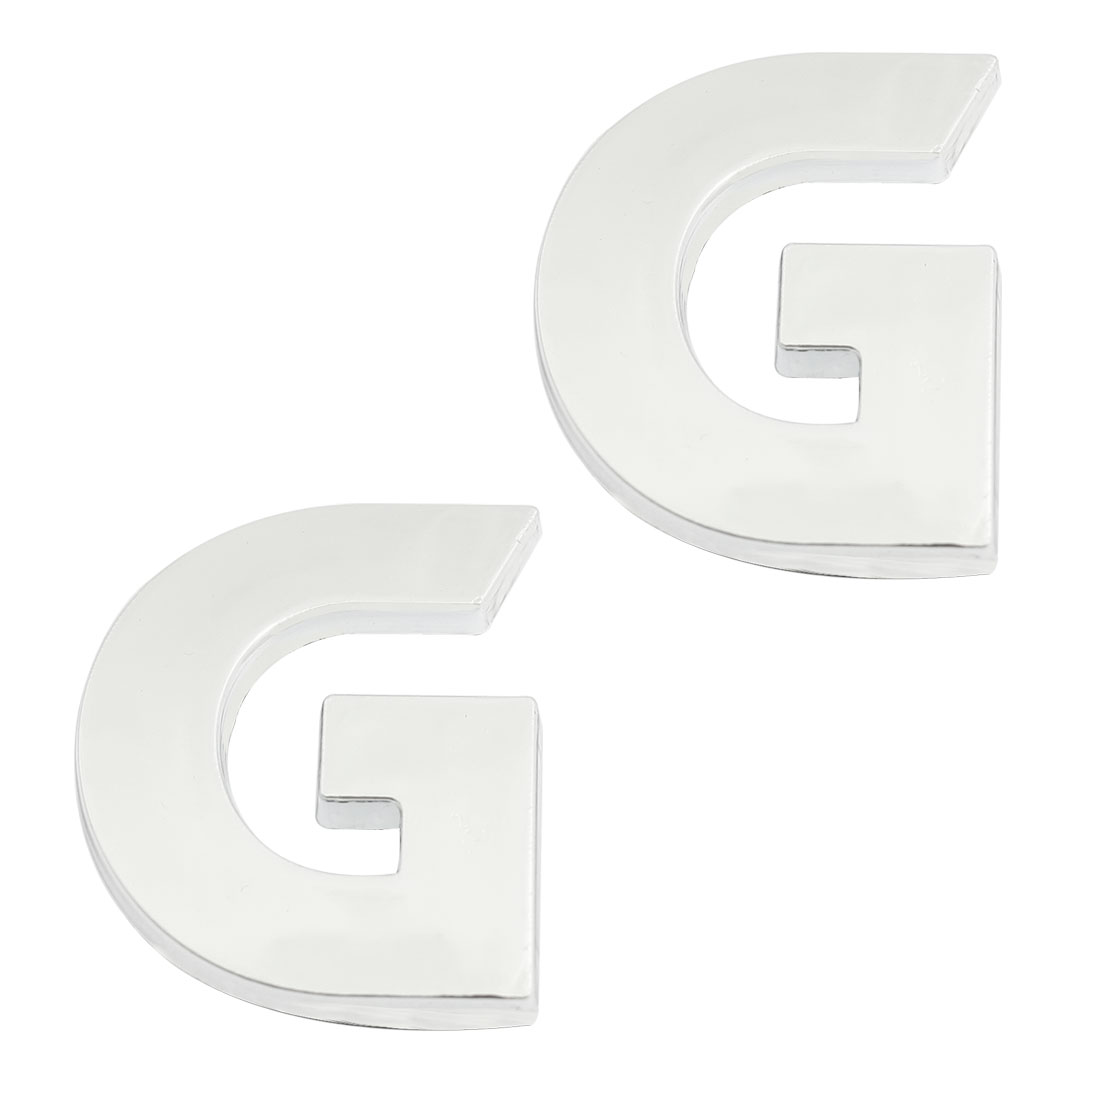 2 x Adhesive Plastic Letter G Car 3D Emblem Badge Decal Decor Silver Tone